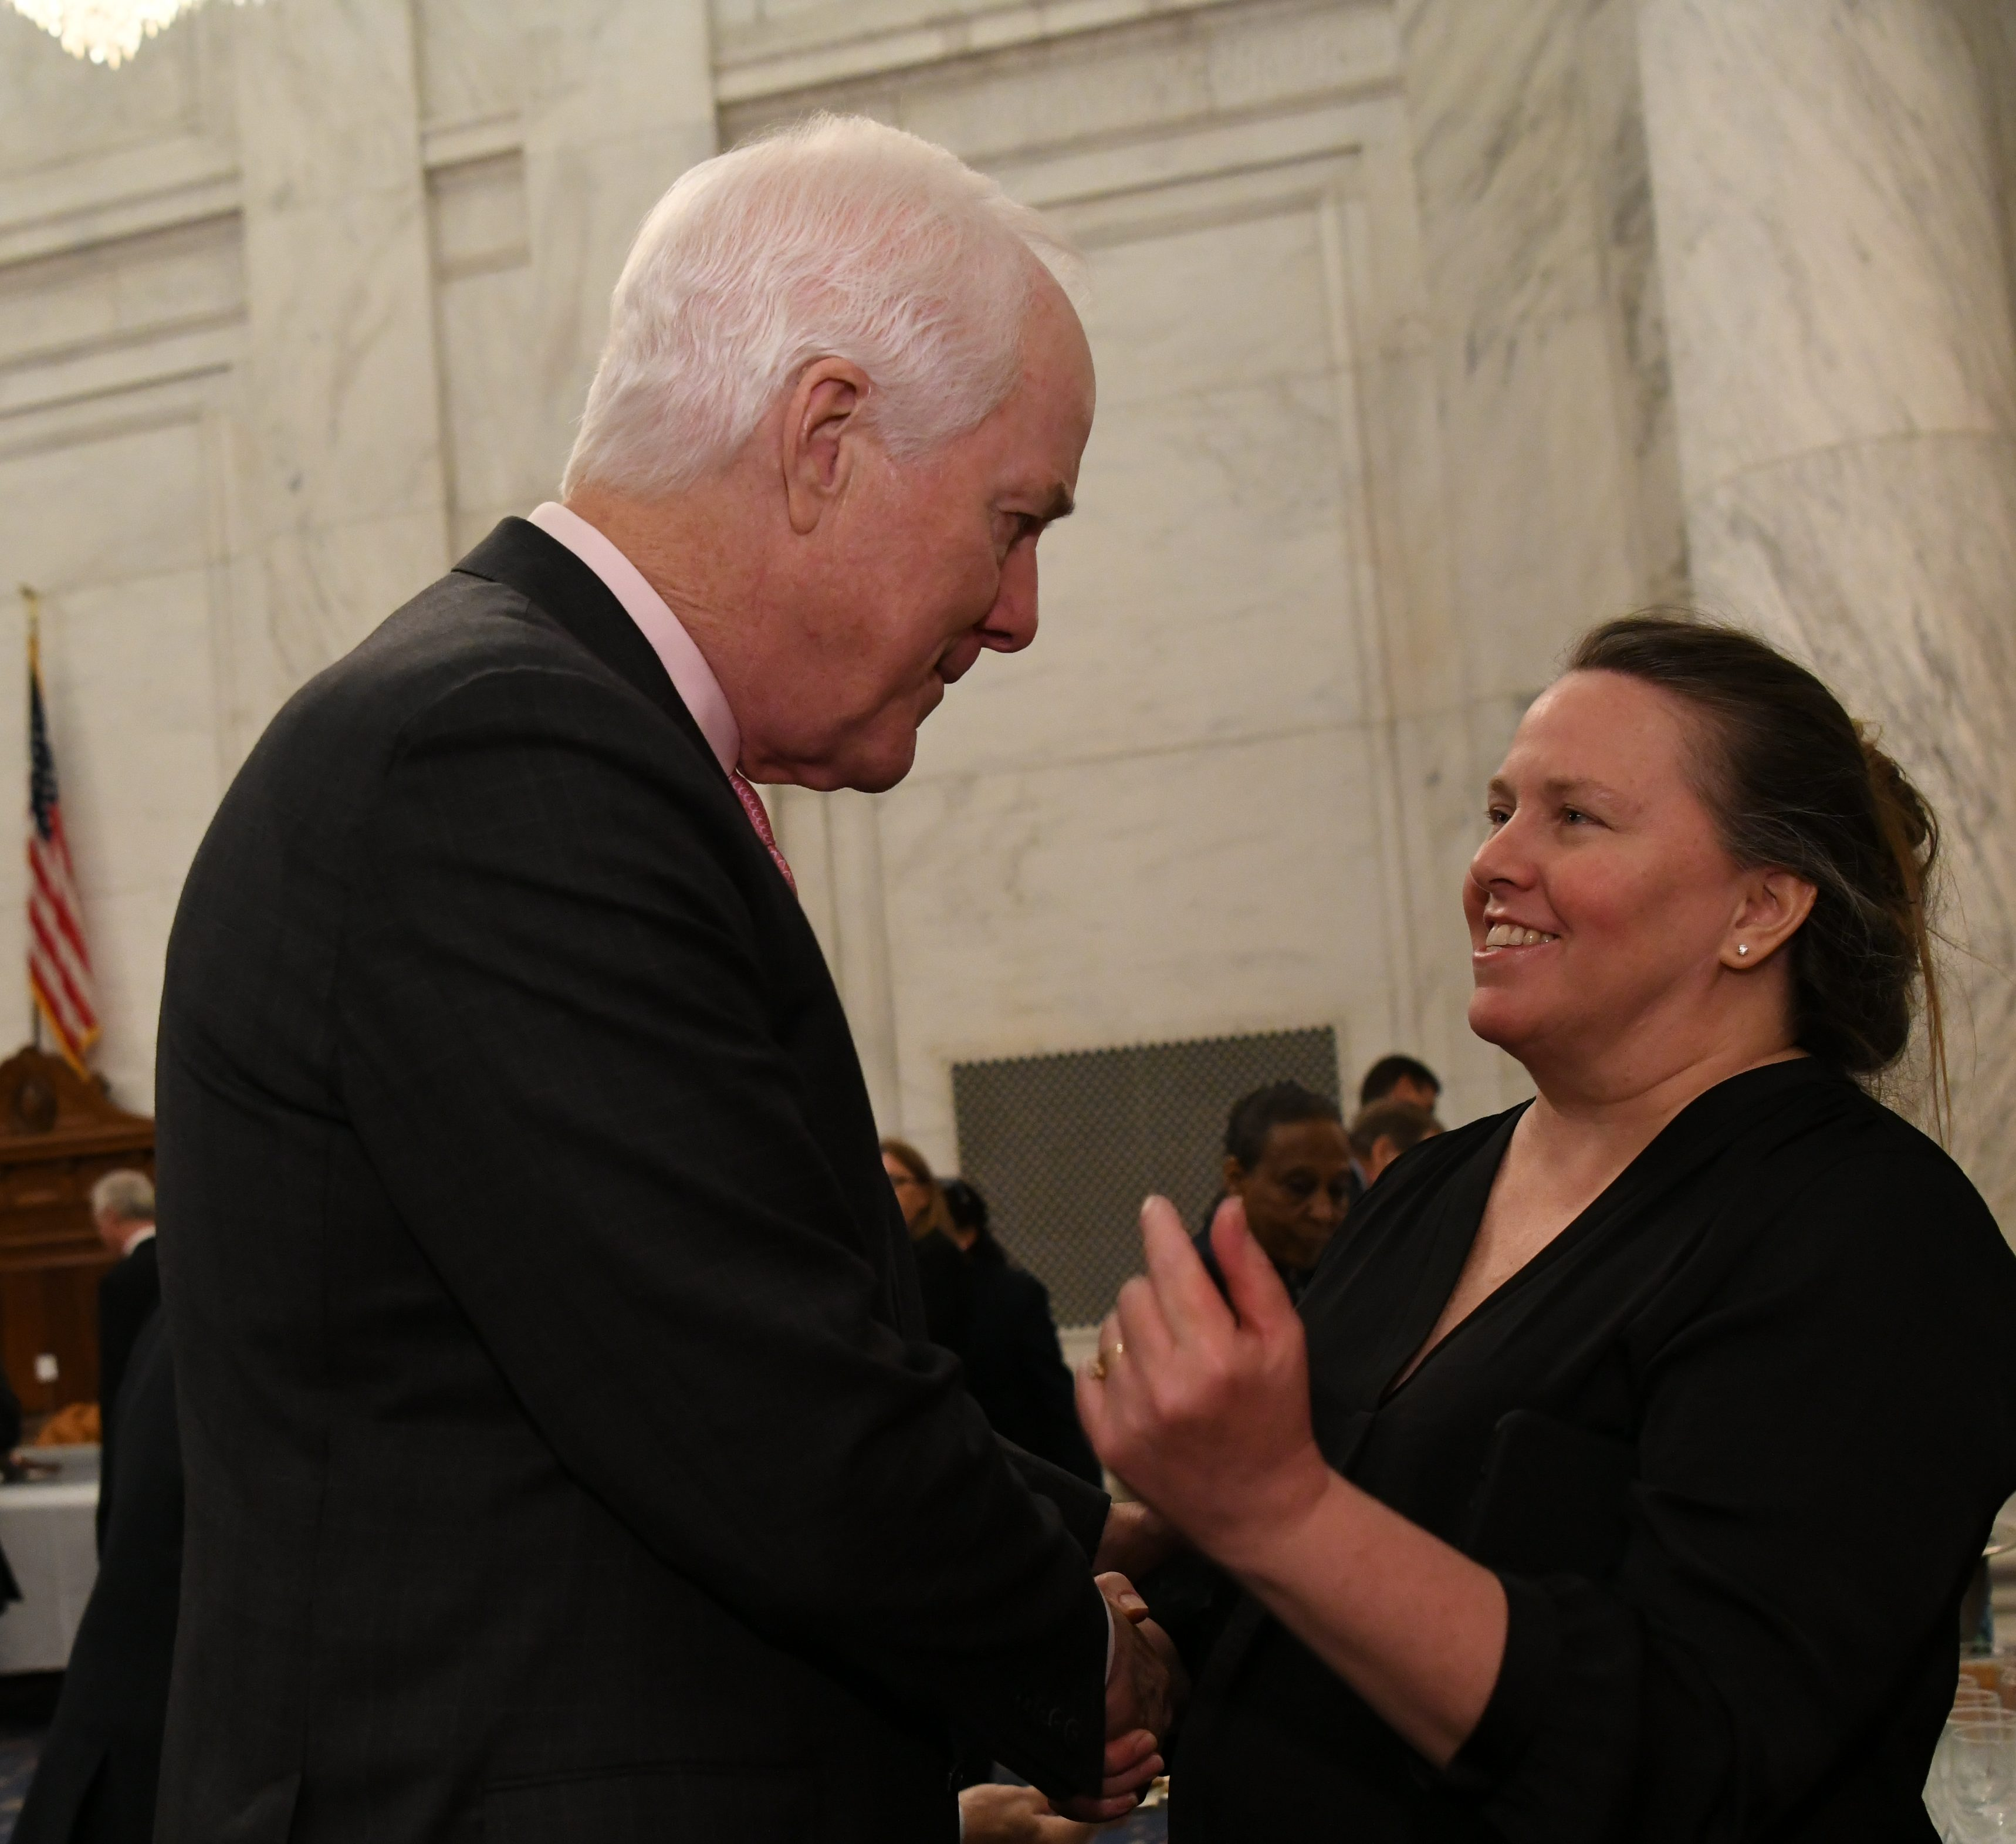 Texas Senator John Cornyn (left) welcomes Monica Heil (right), who is the administrative director for Senator Isakson, into the Kennedy Caucus Room during the luncheon. Monica and family hosted the South 40 Smokehouse catering team into their home where all of the food was prepared in their driveway using several different pits and catering trailer.